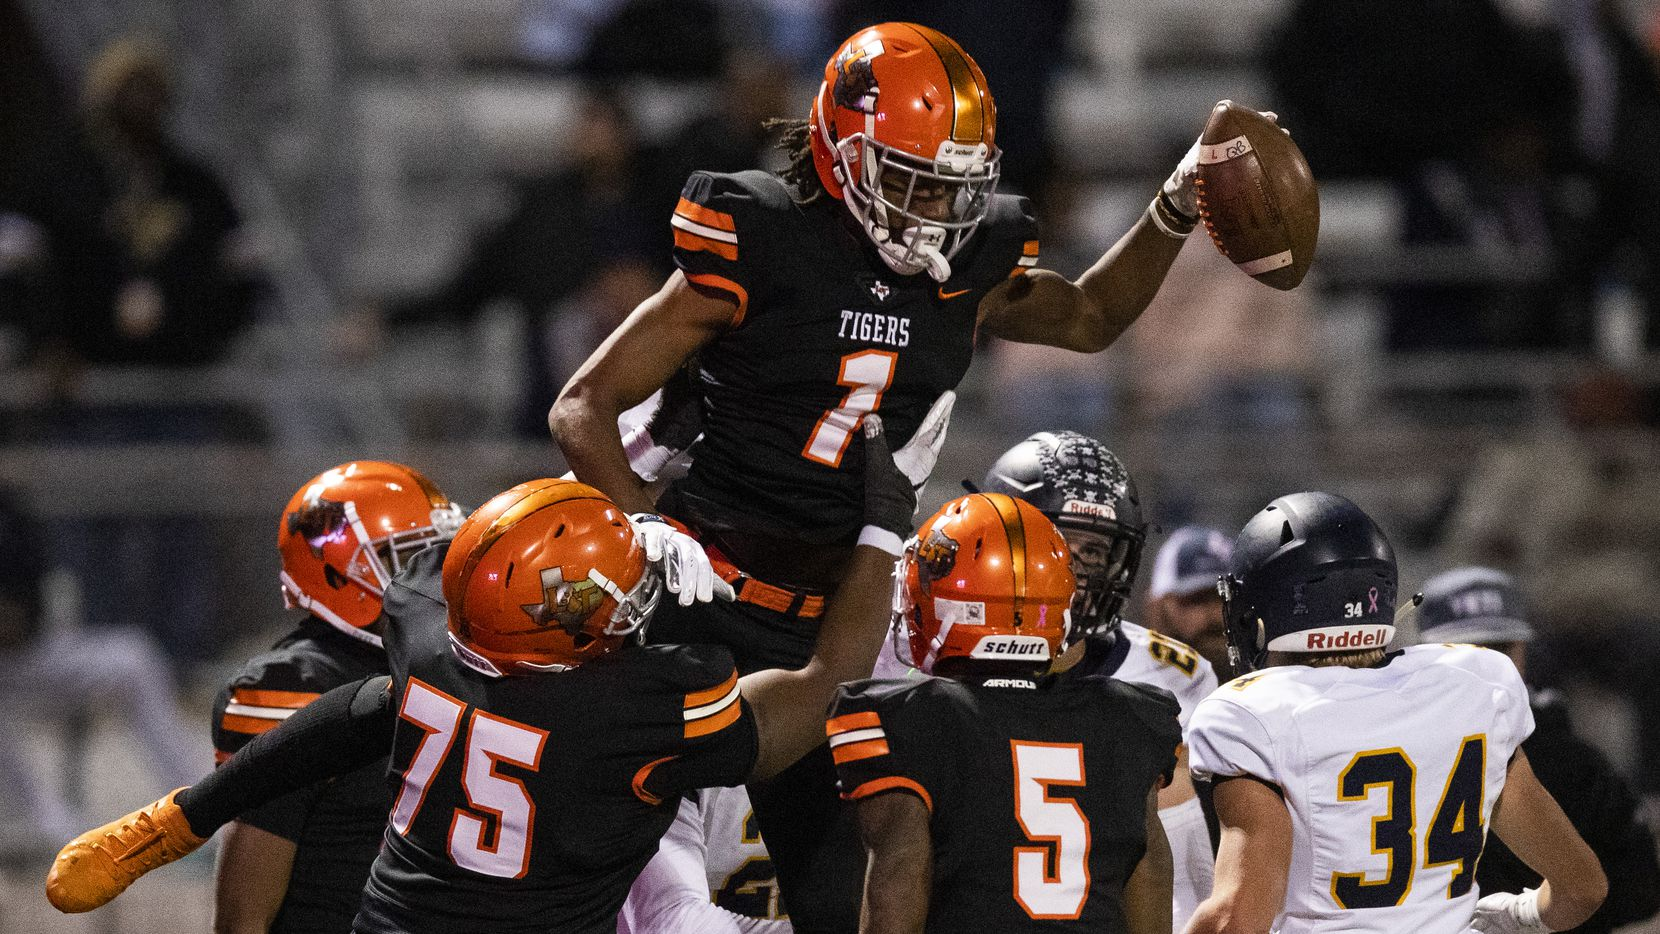 Lancaster wide receiver LaTrell Caples (1) celebrates a touchdown during the second quarter of a District 6-5A Division I high school football game between Highland Park and Lancaster on Friday, November 1, 2019 at Beverly D. Humphrey Tiger Stadium in Lancaster.